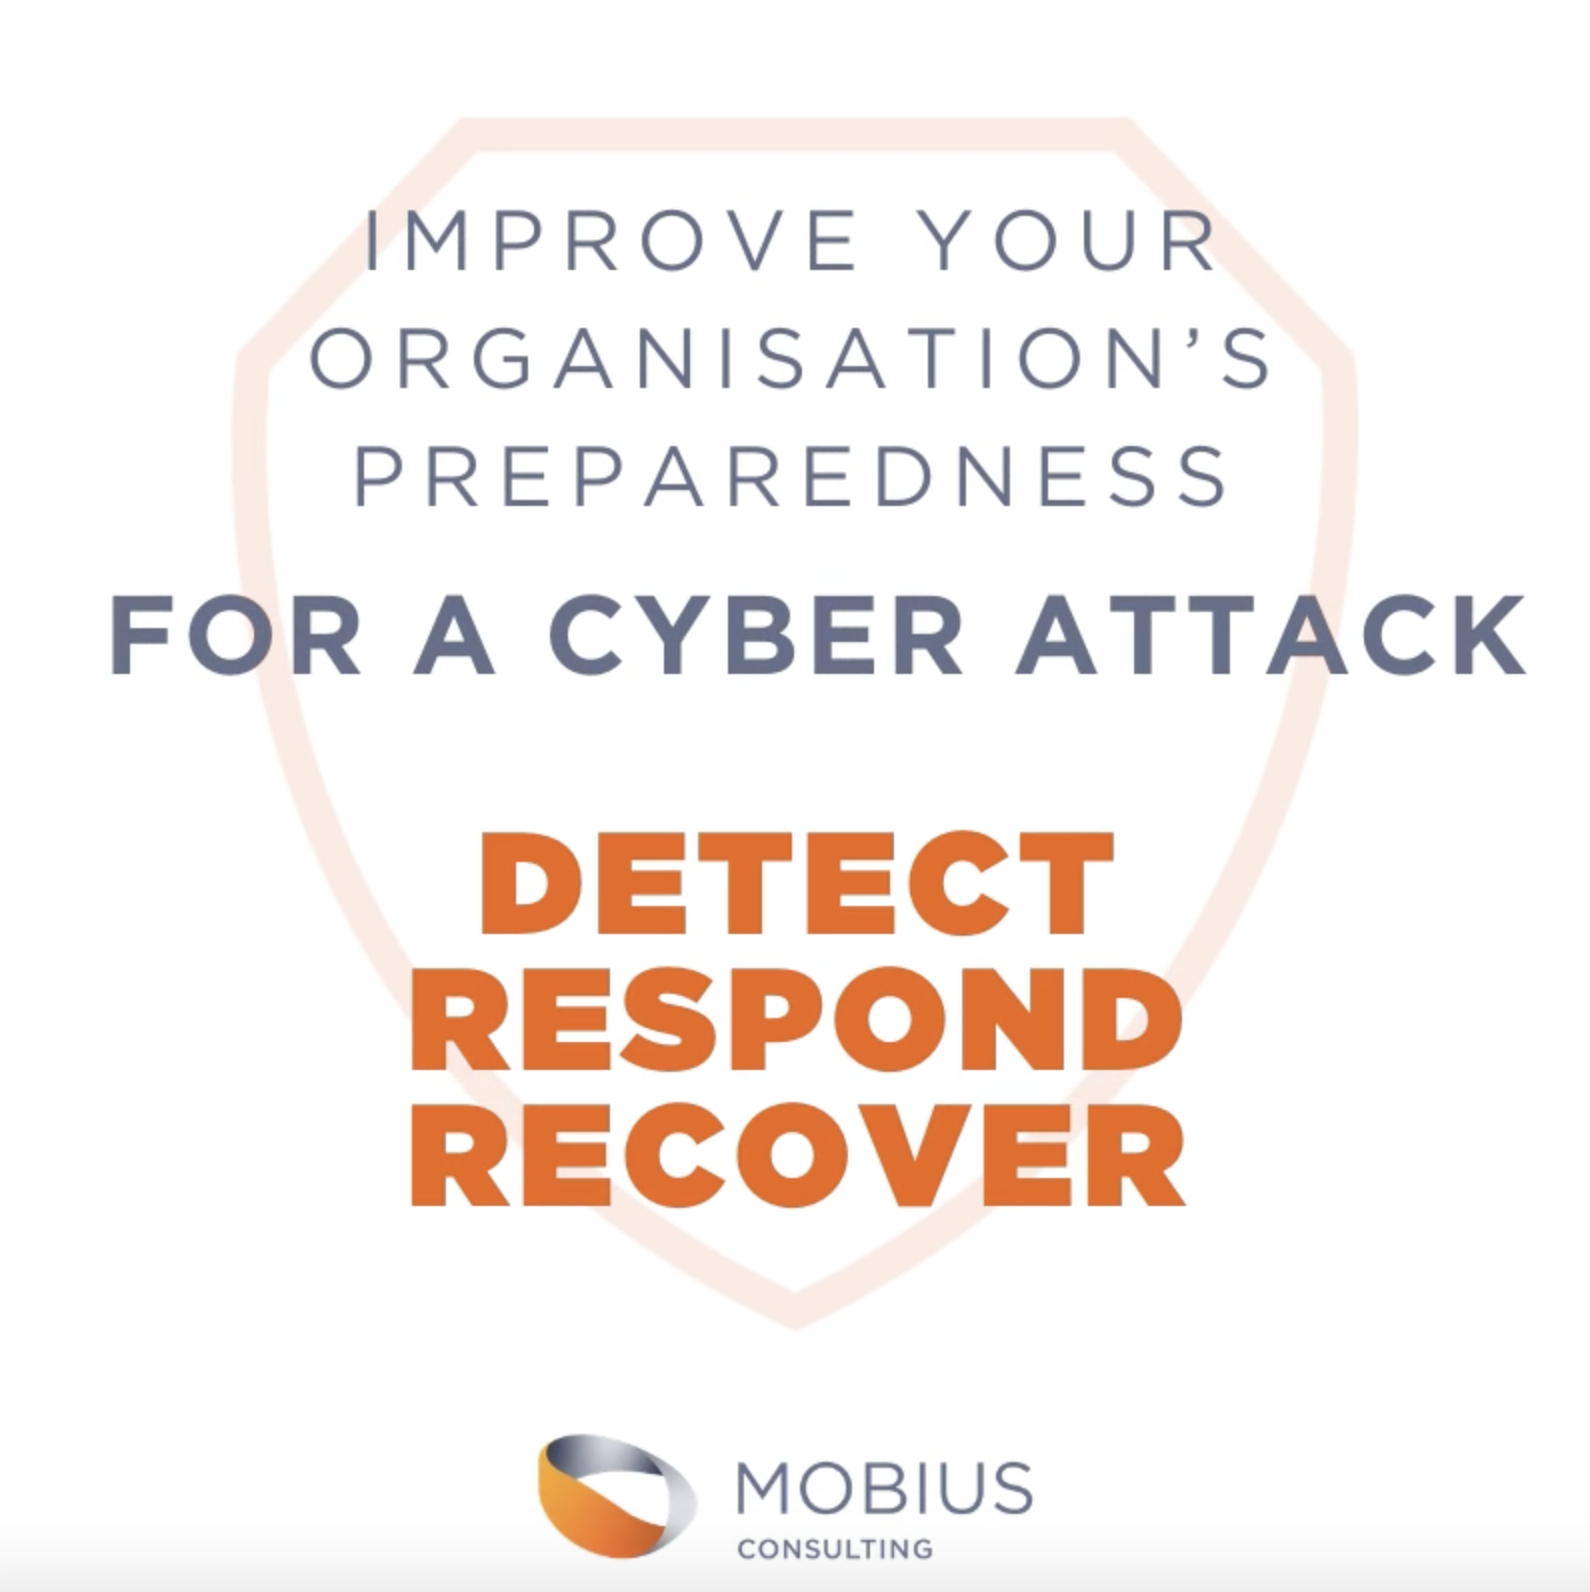 Improve your organisation's preparedness for a cyber attack